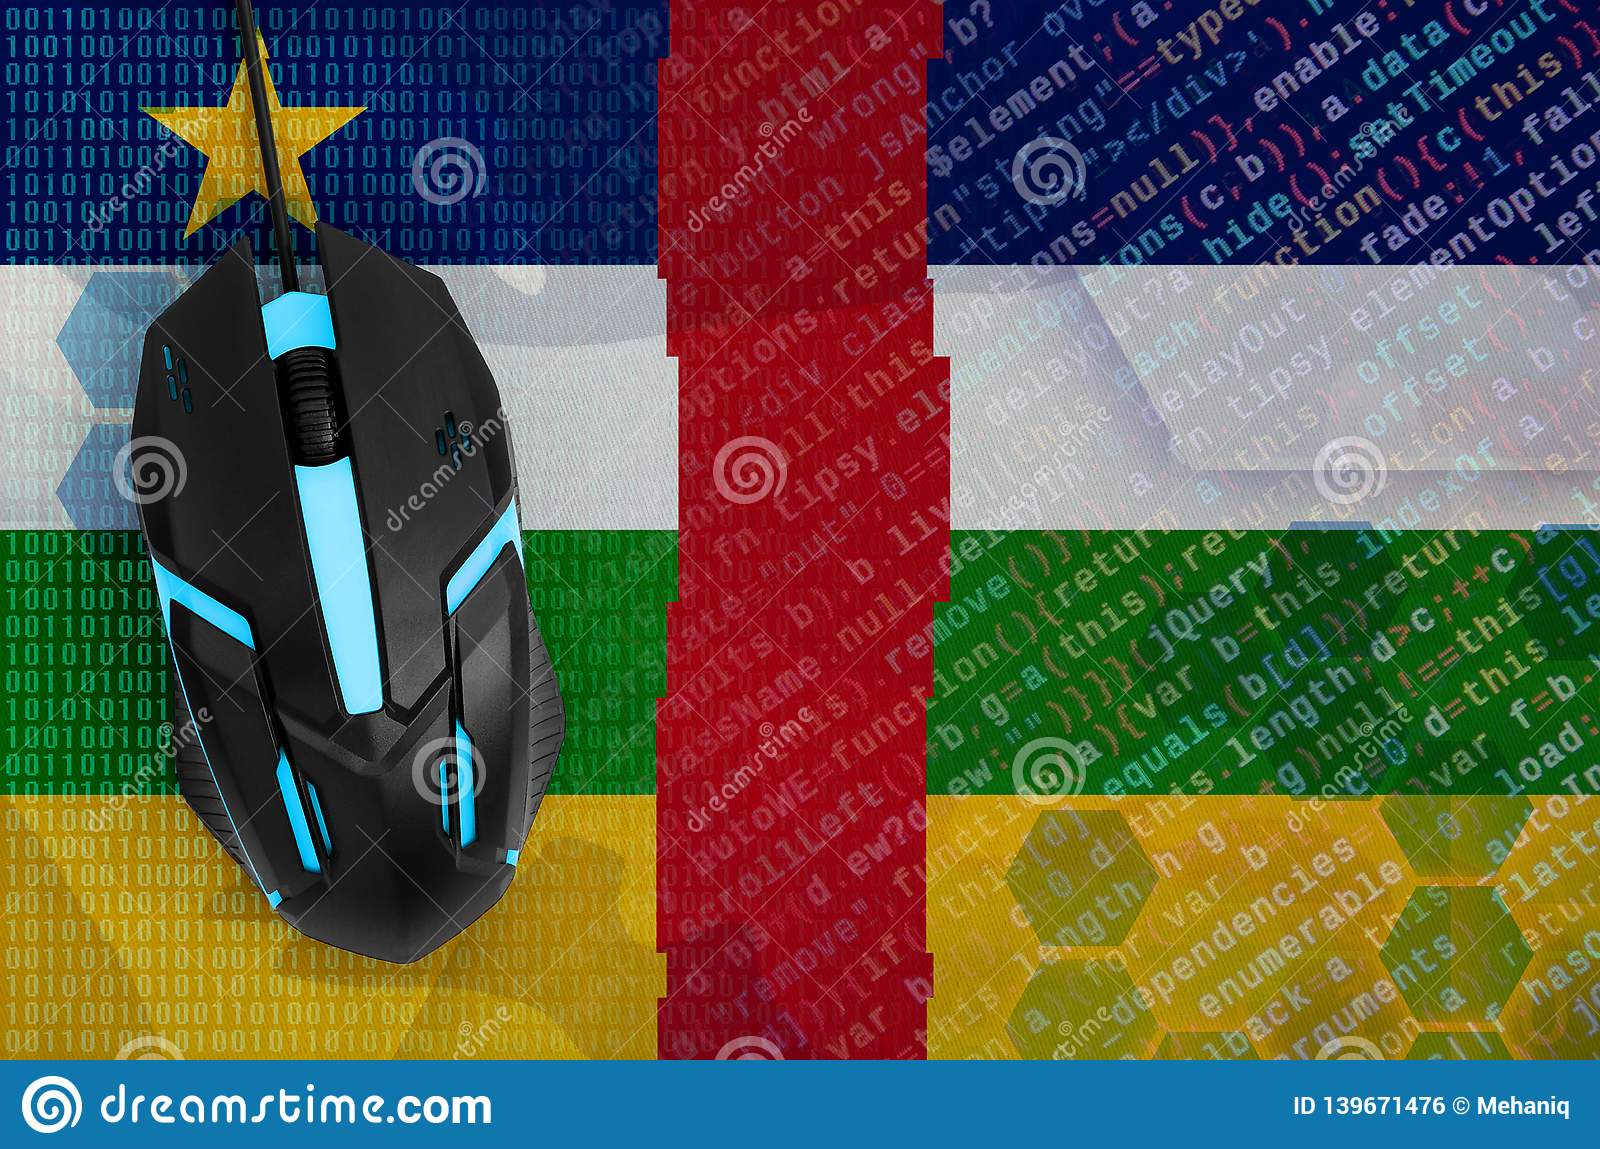 Central African Republic flag and computer mouse. Digital threat, illegal actions on the Internet